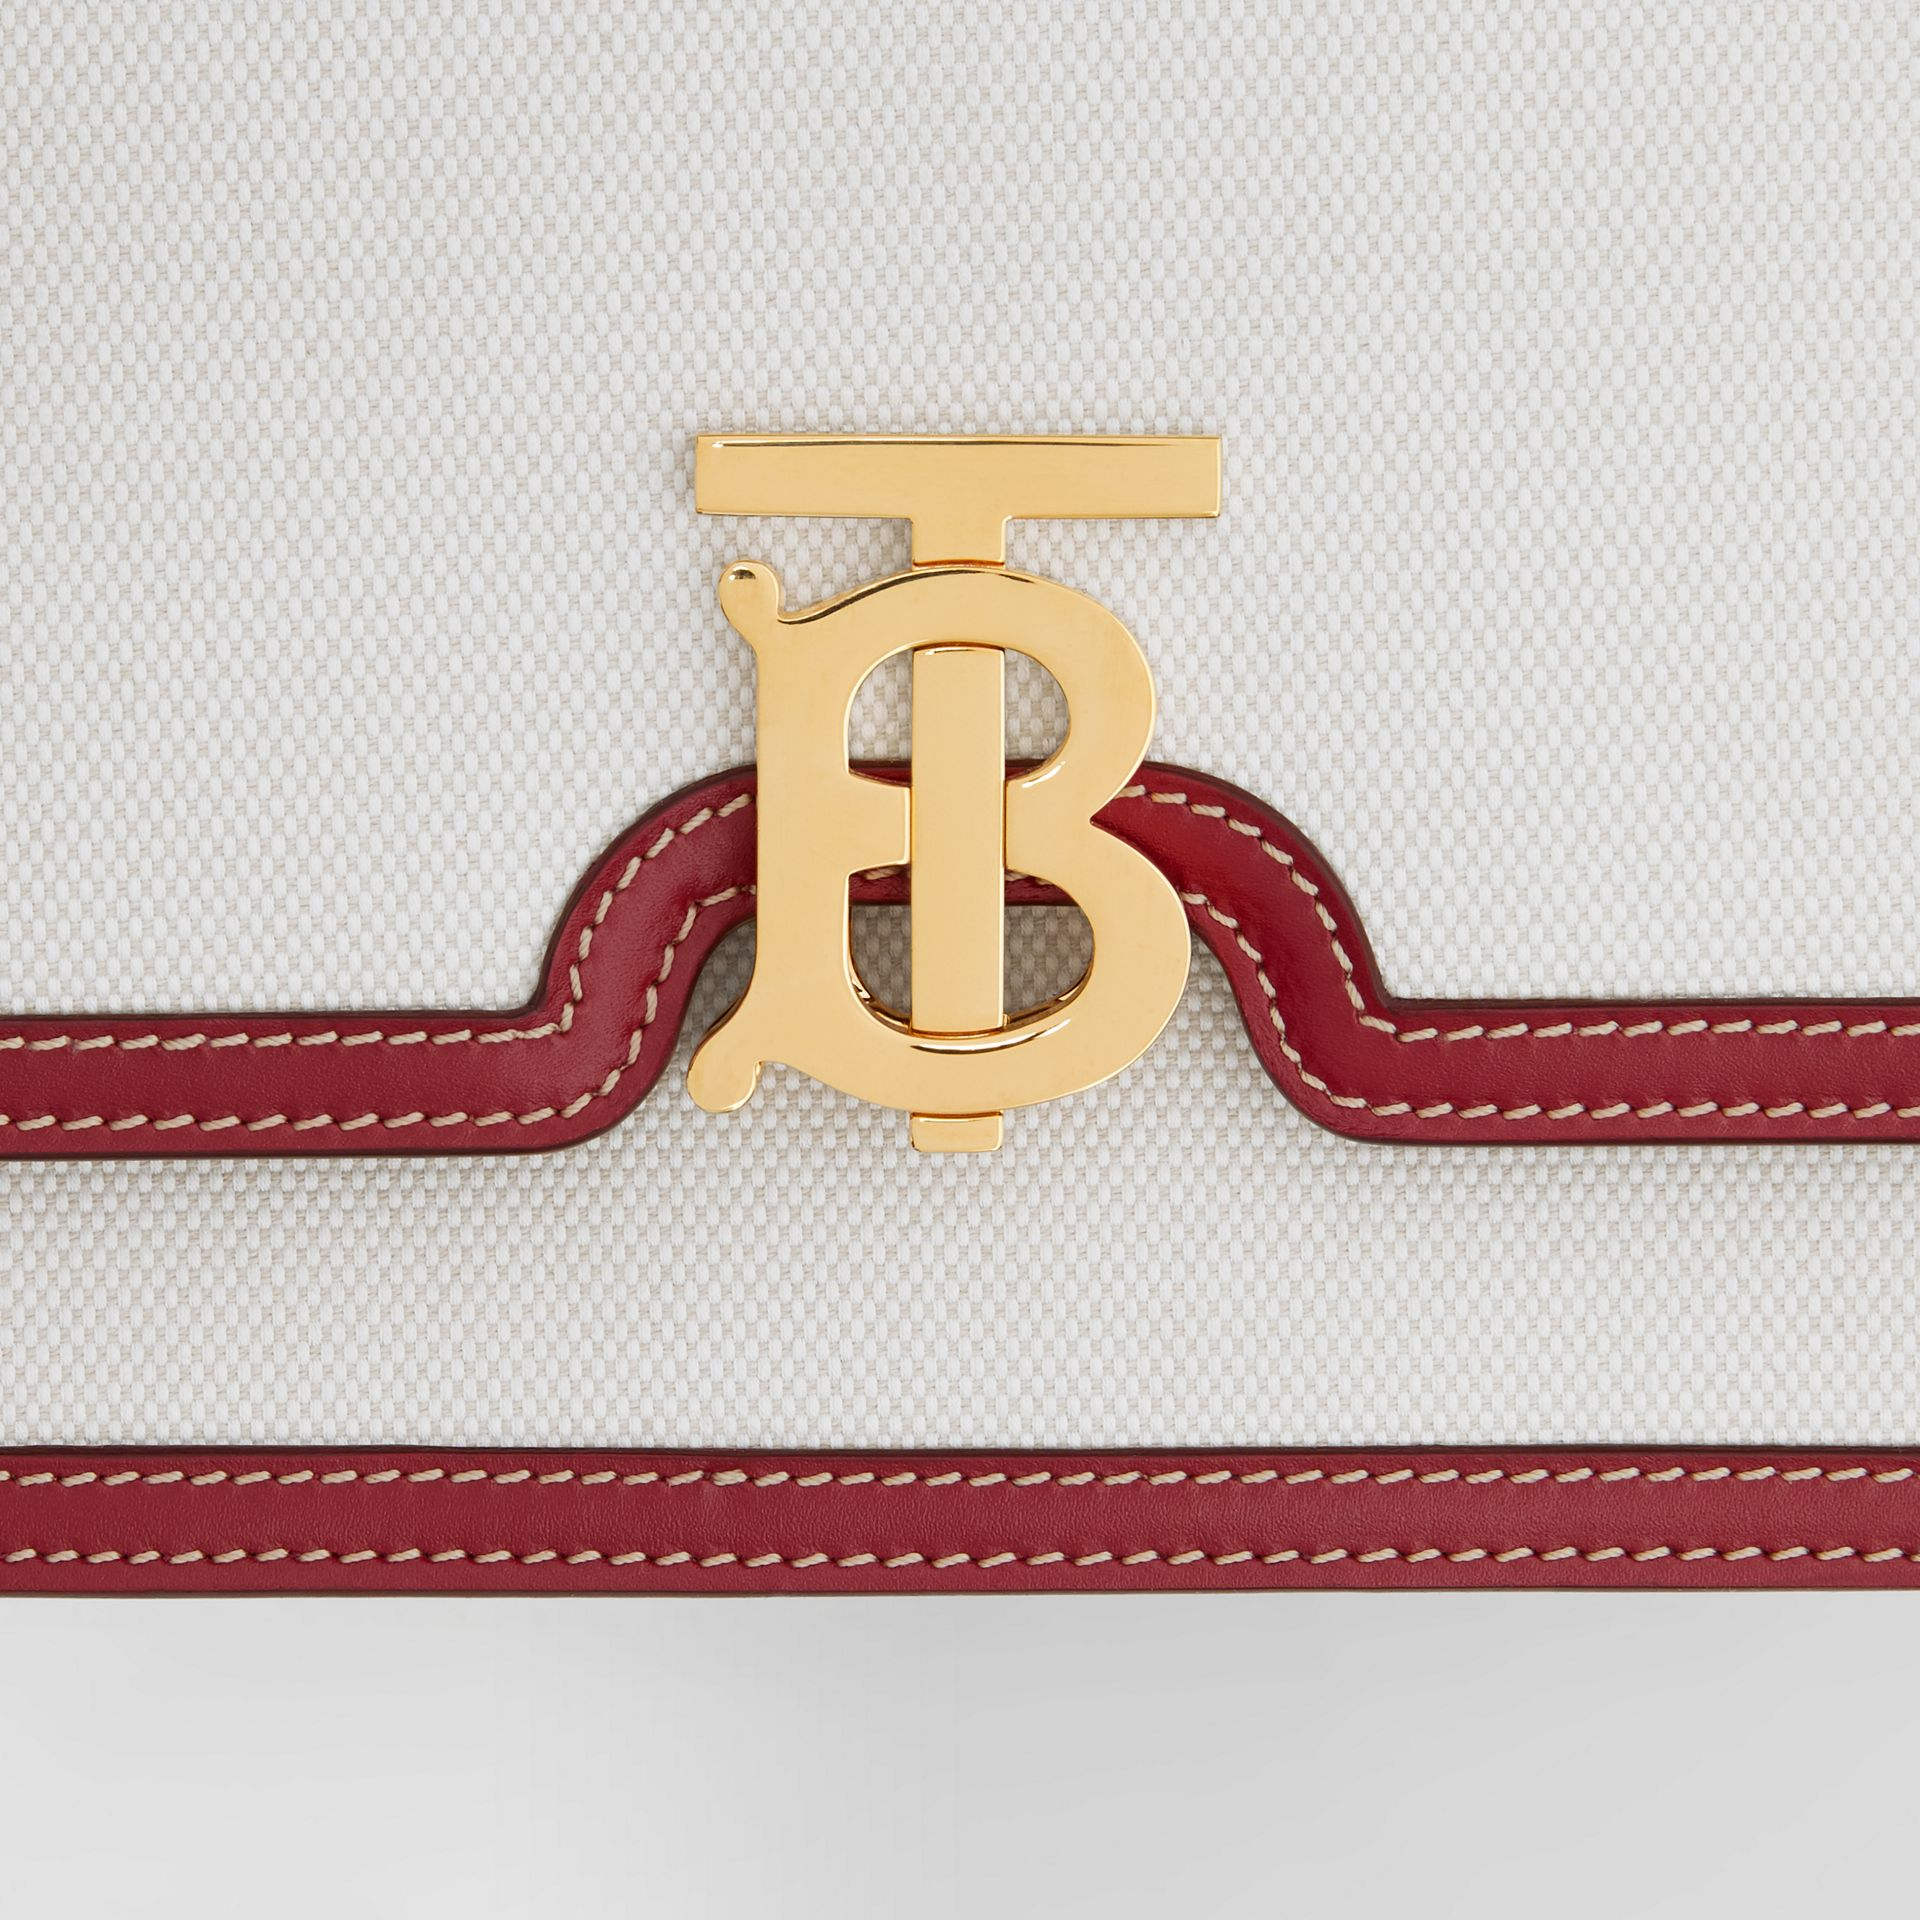 Small Two-tone Canvas and Leather TB Bag in Natural/dark Carmine - Women | Burberry Australia - gallery image 9